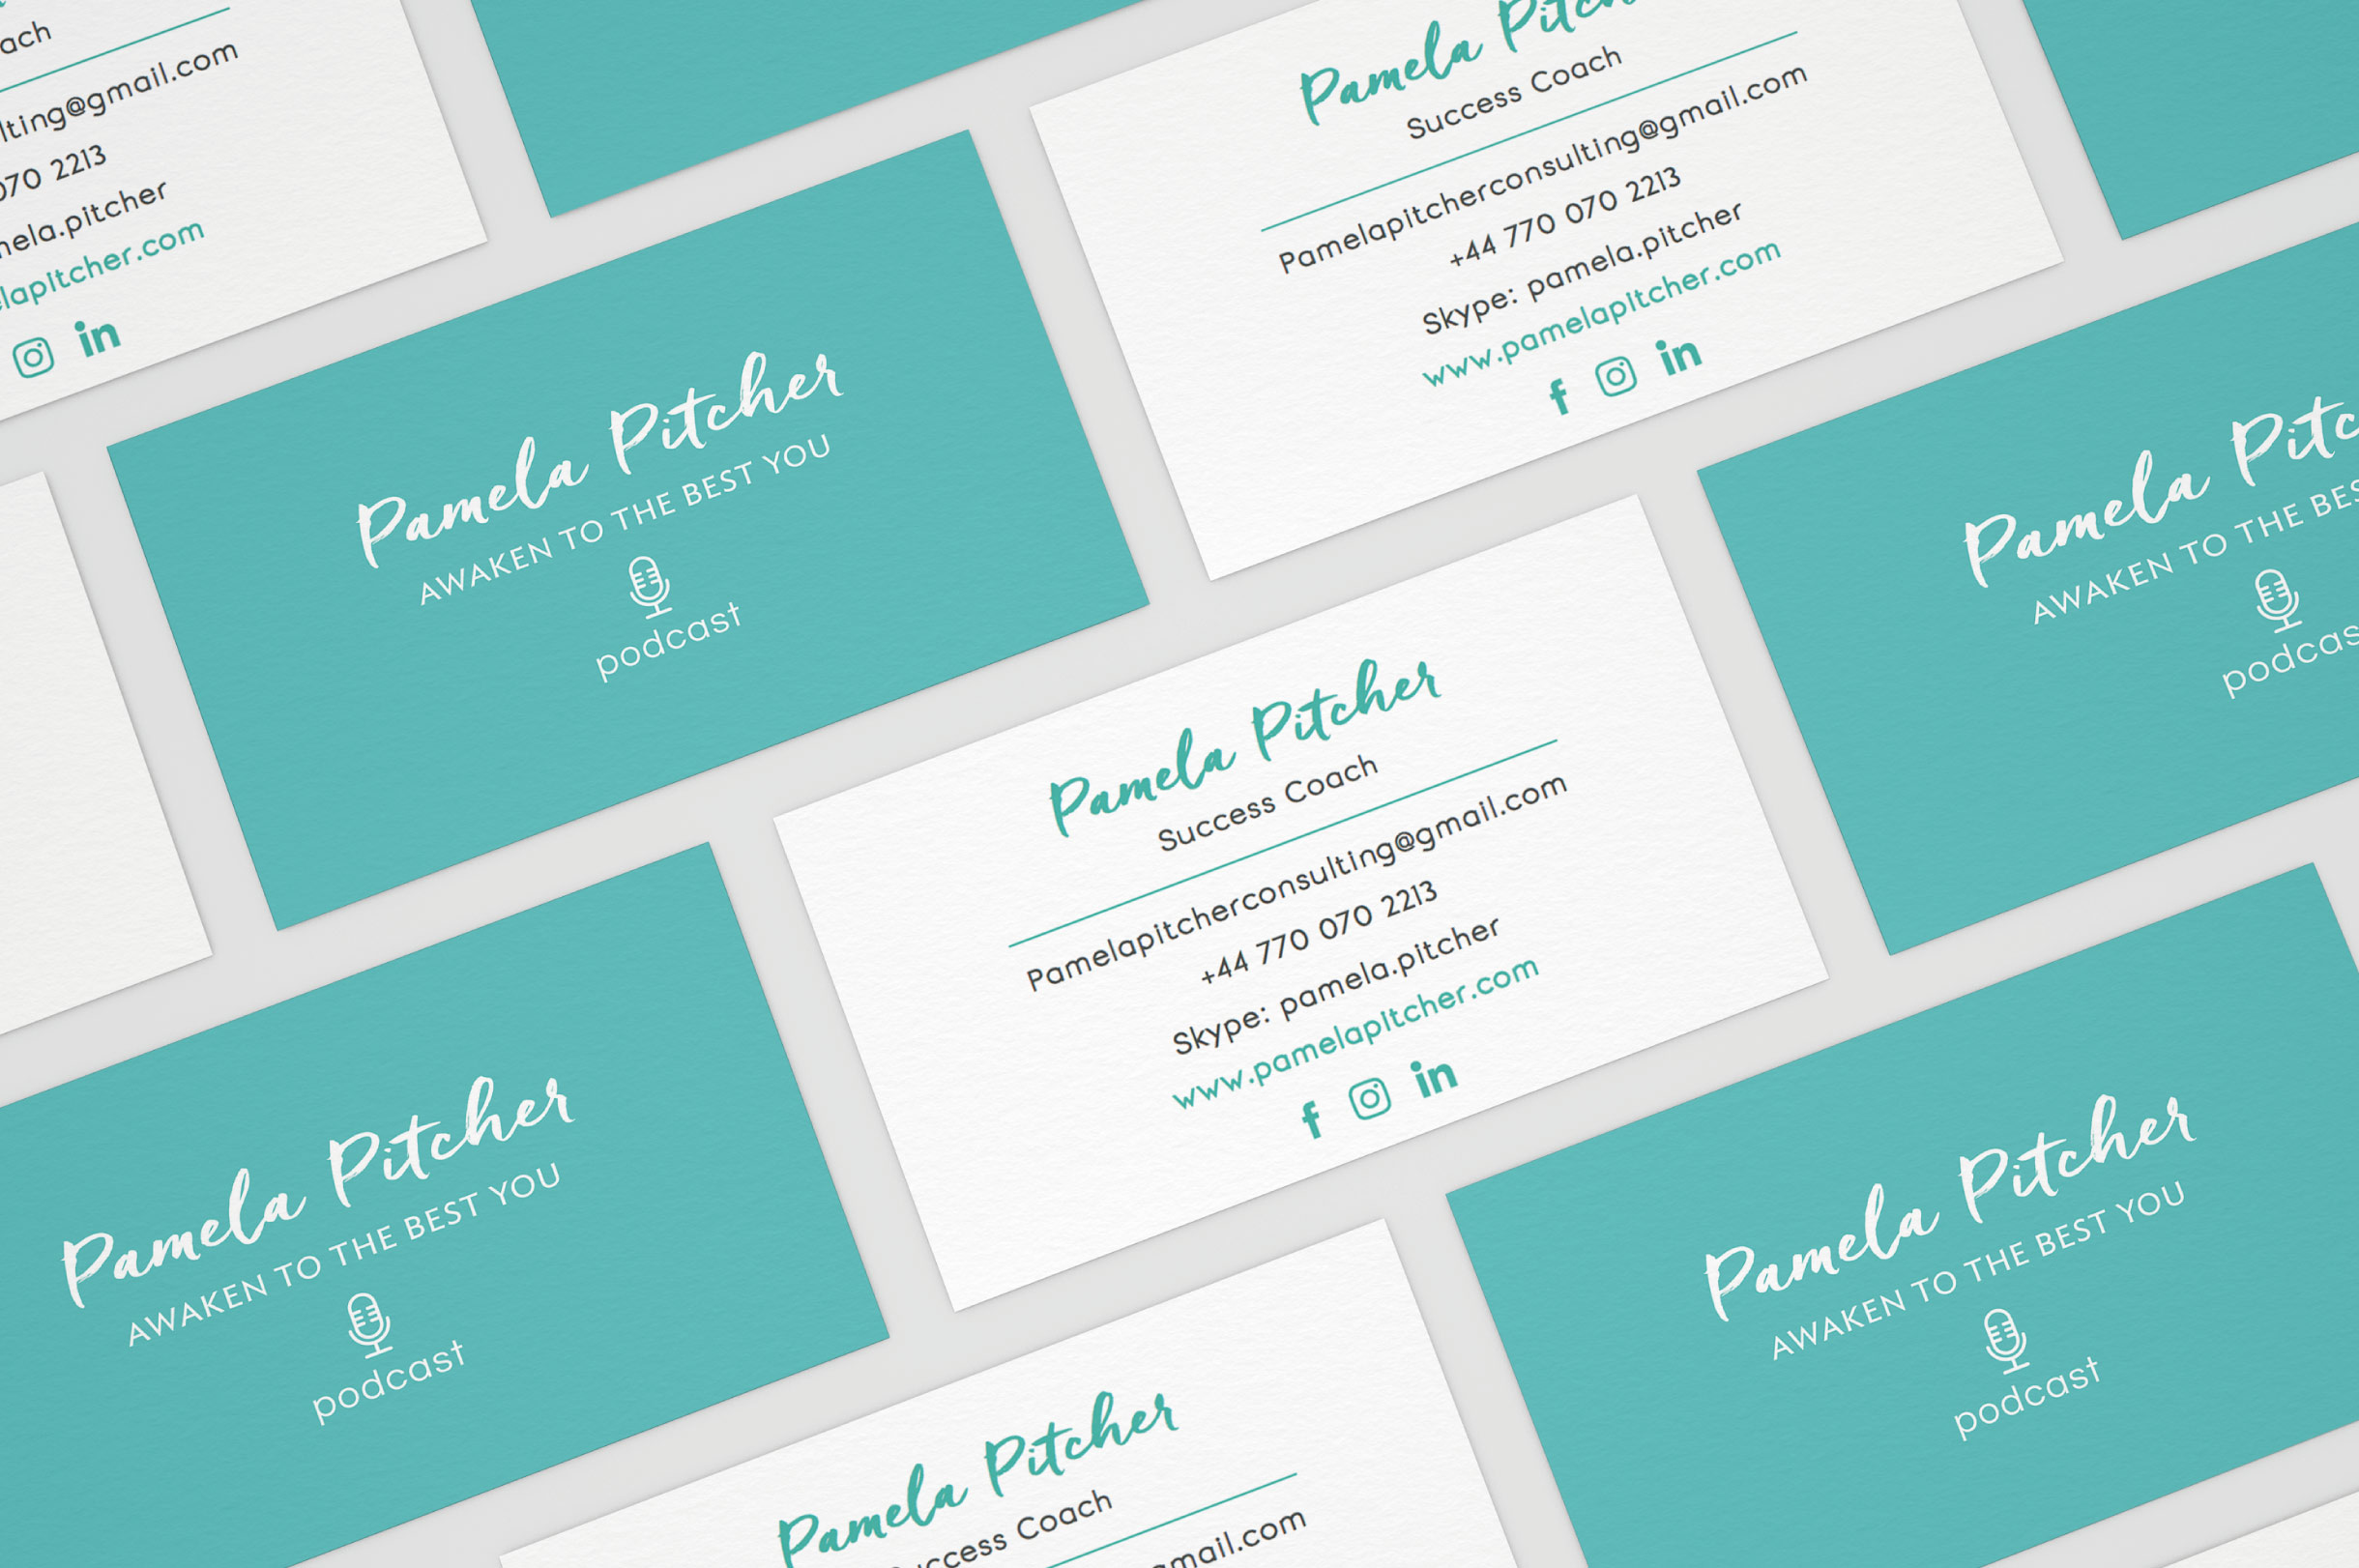 Quints Design co - Portfolio - Pamela Pitcher